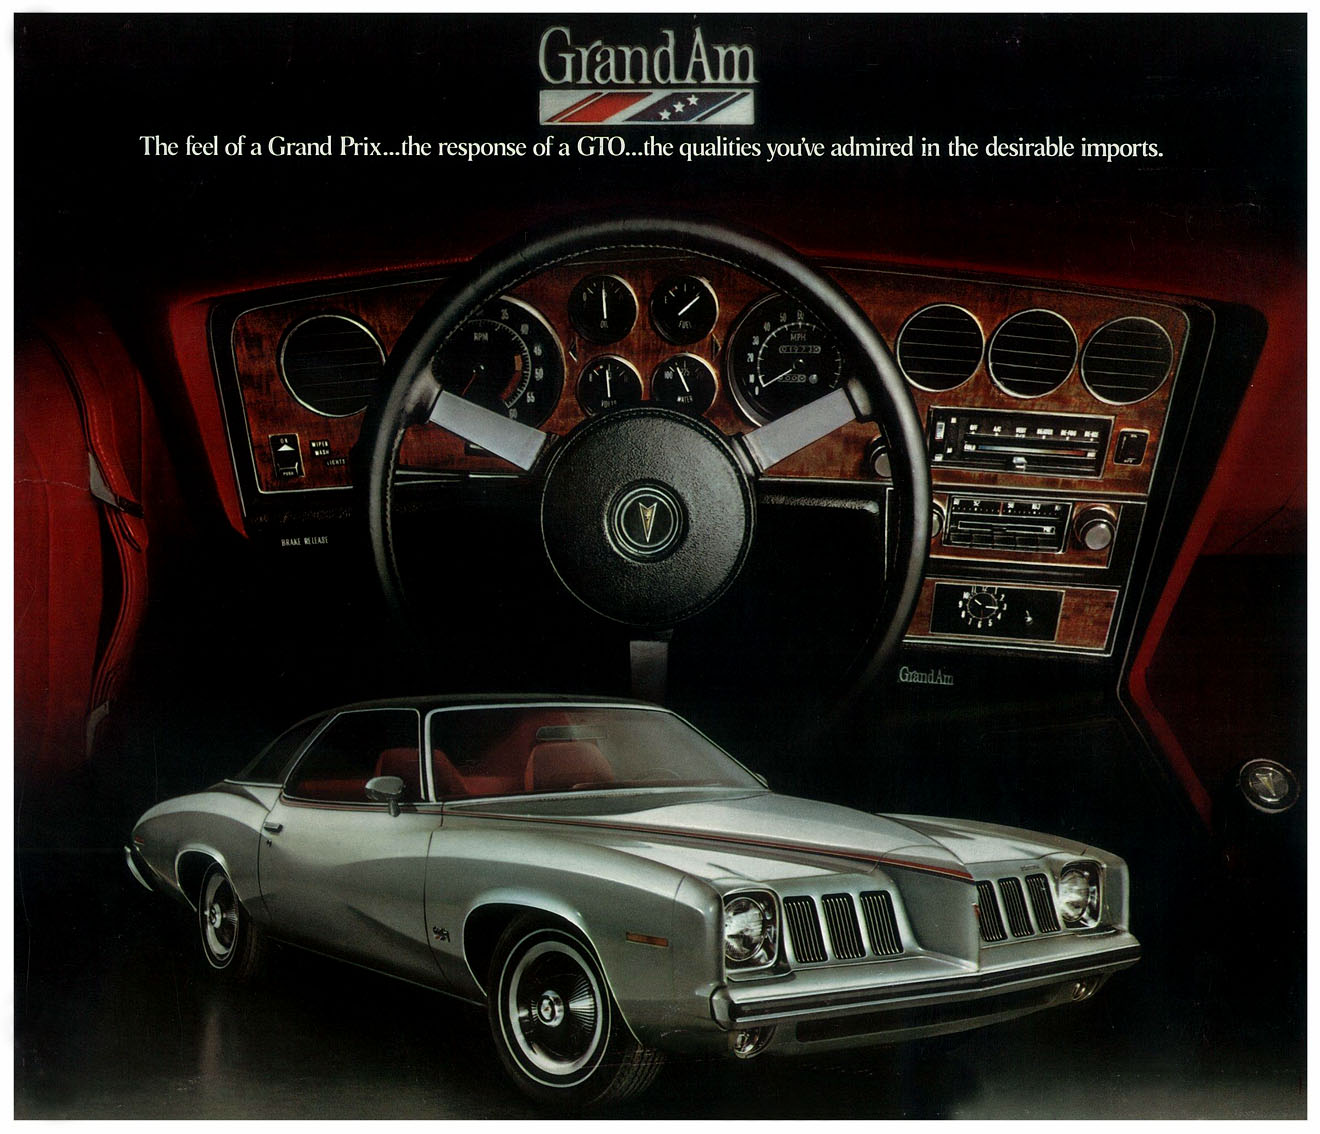 1973 Pontiac Grand Am Gto Project Car Full Size Image